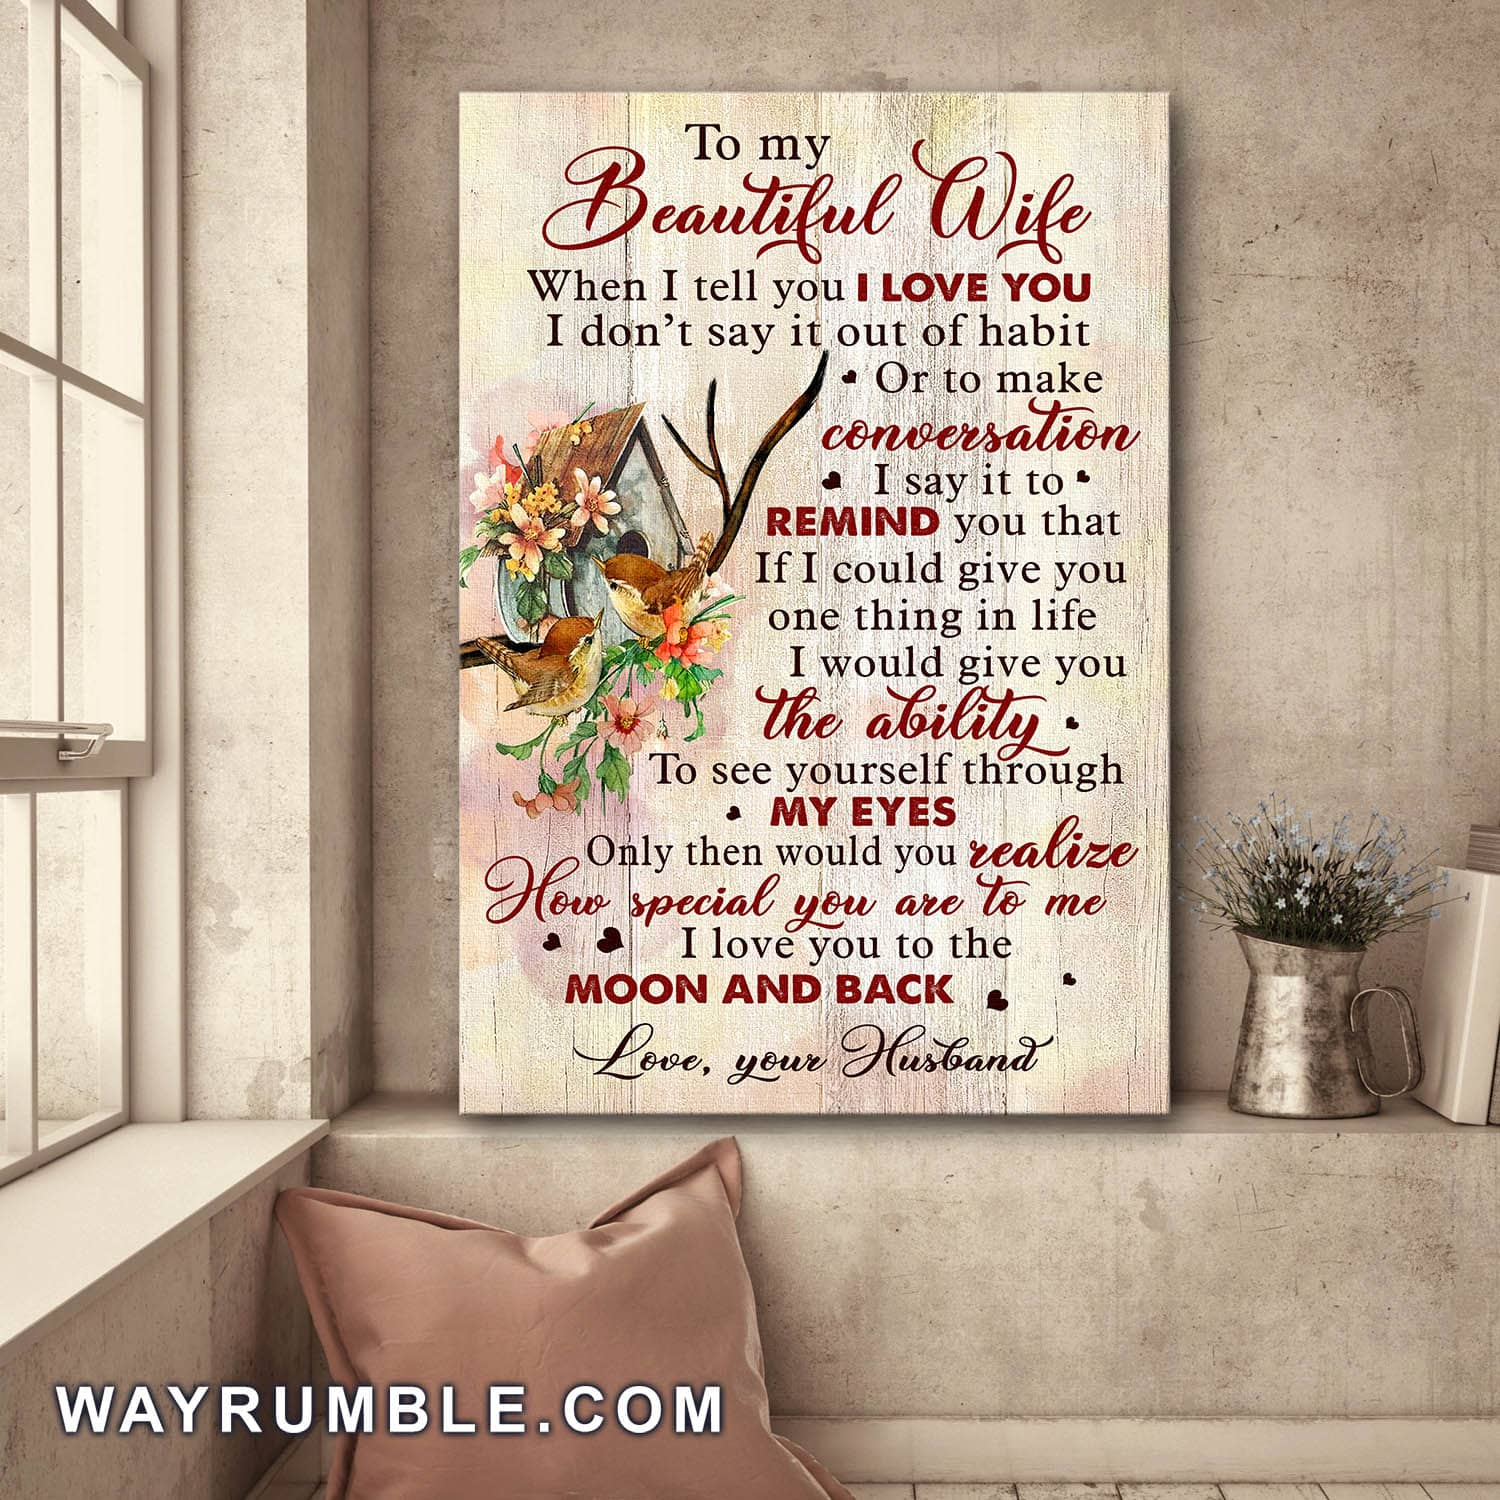 To my wife - Bird house - I love you to the moon and back